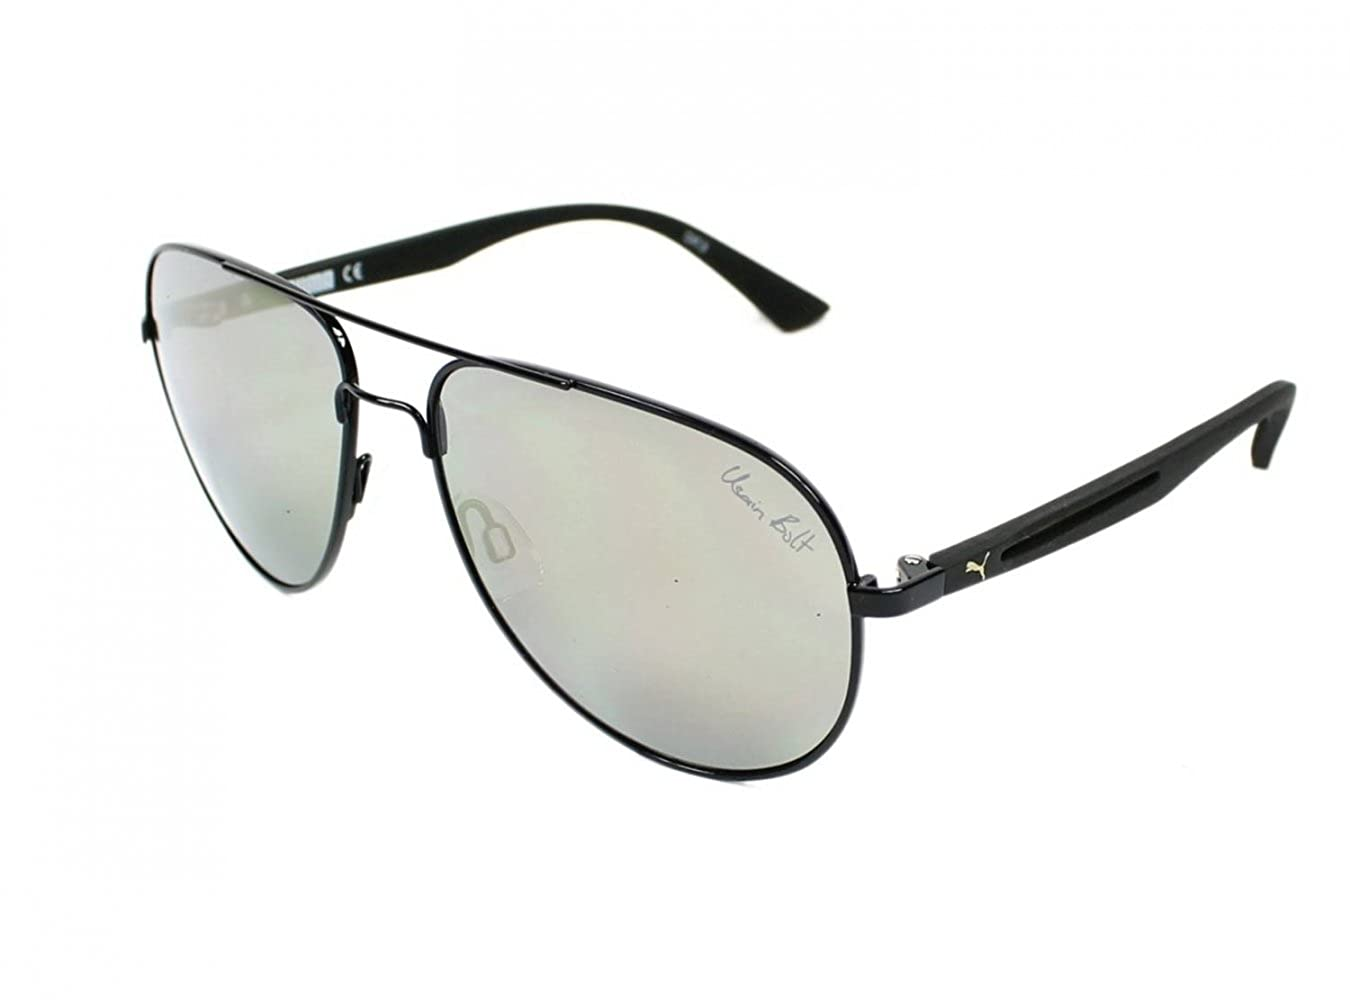 Amazon.com: Puma 0007s 007 Negro flexstyle V2 Aviator ...